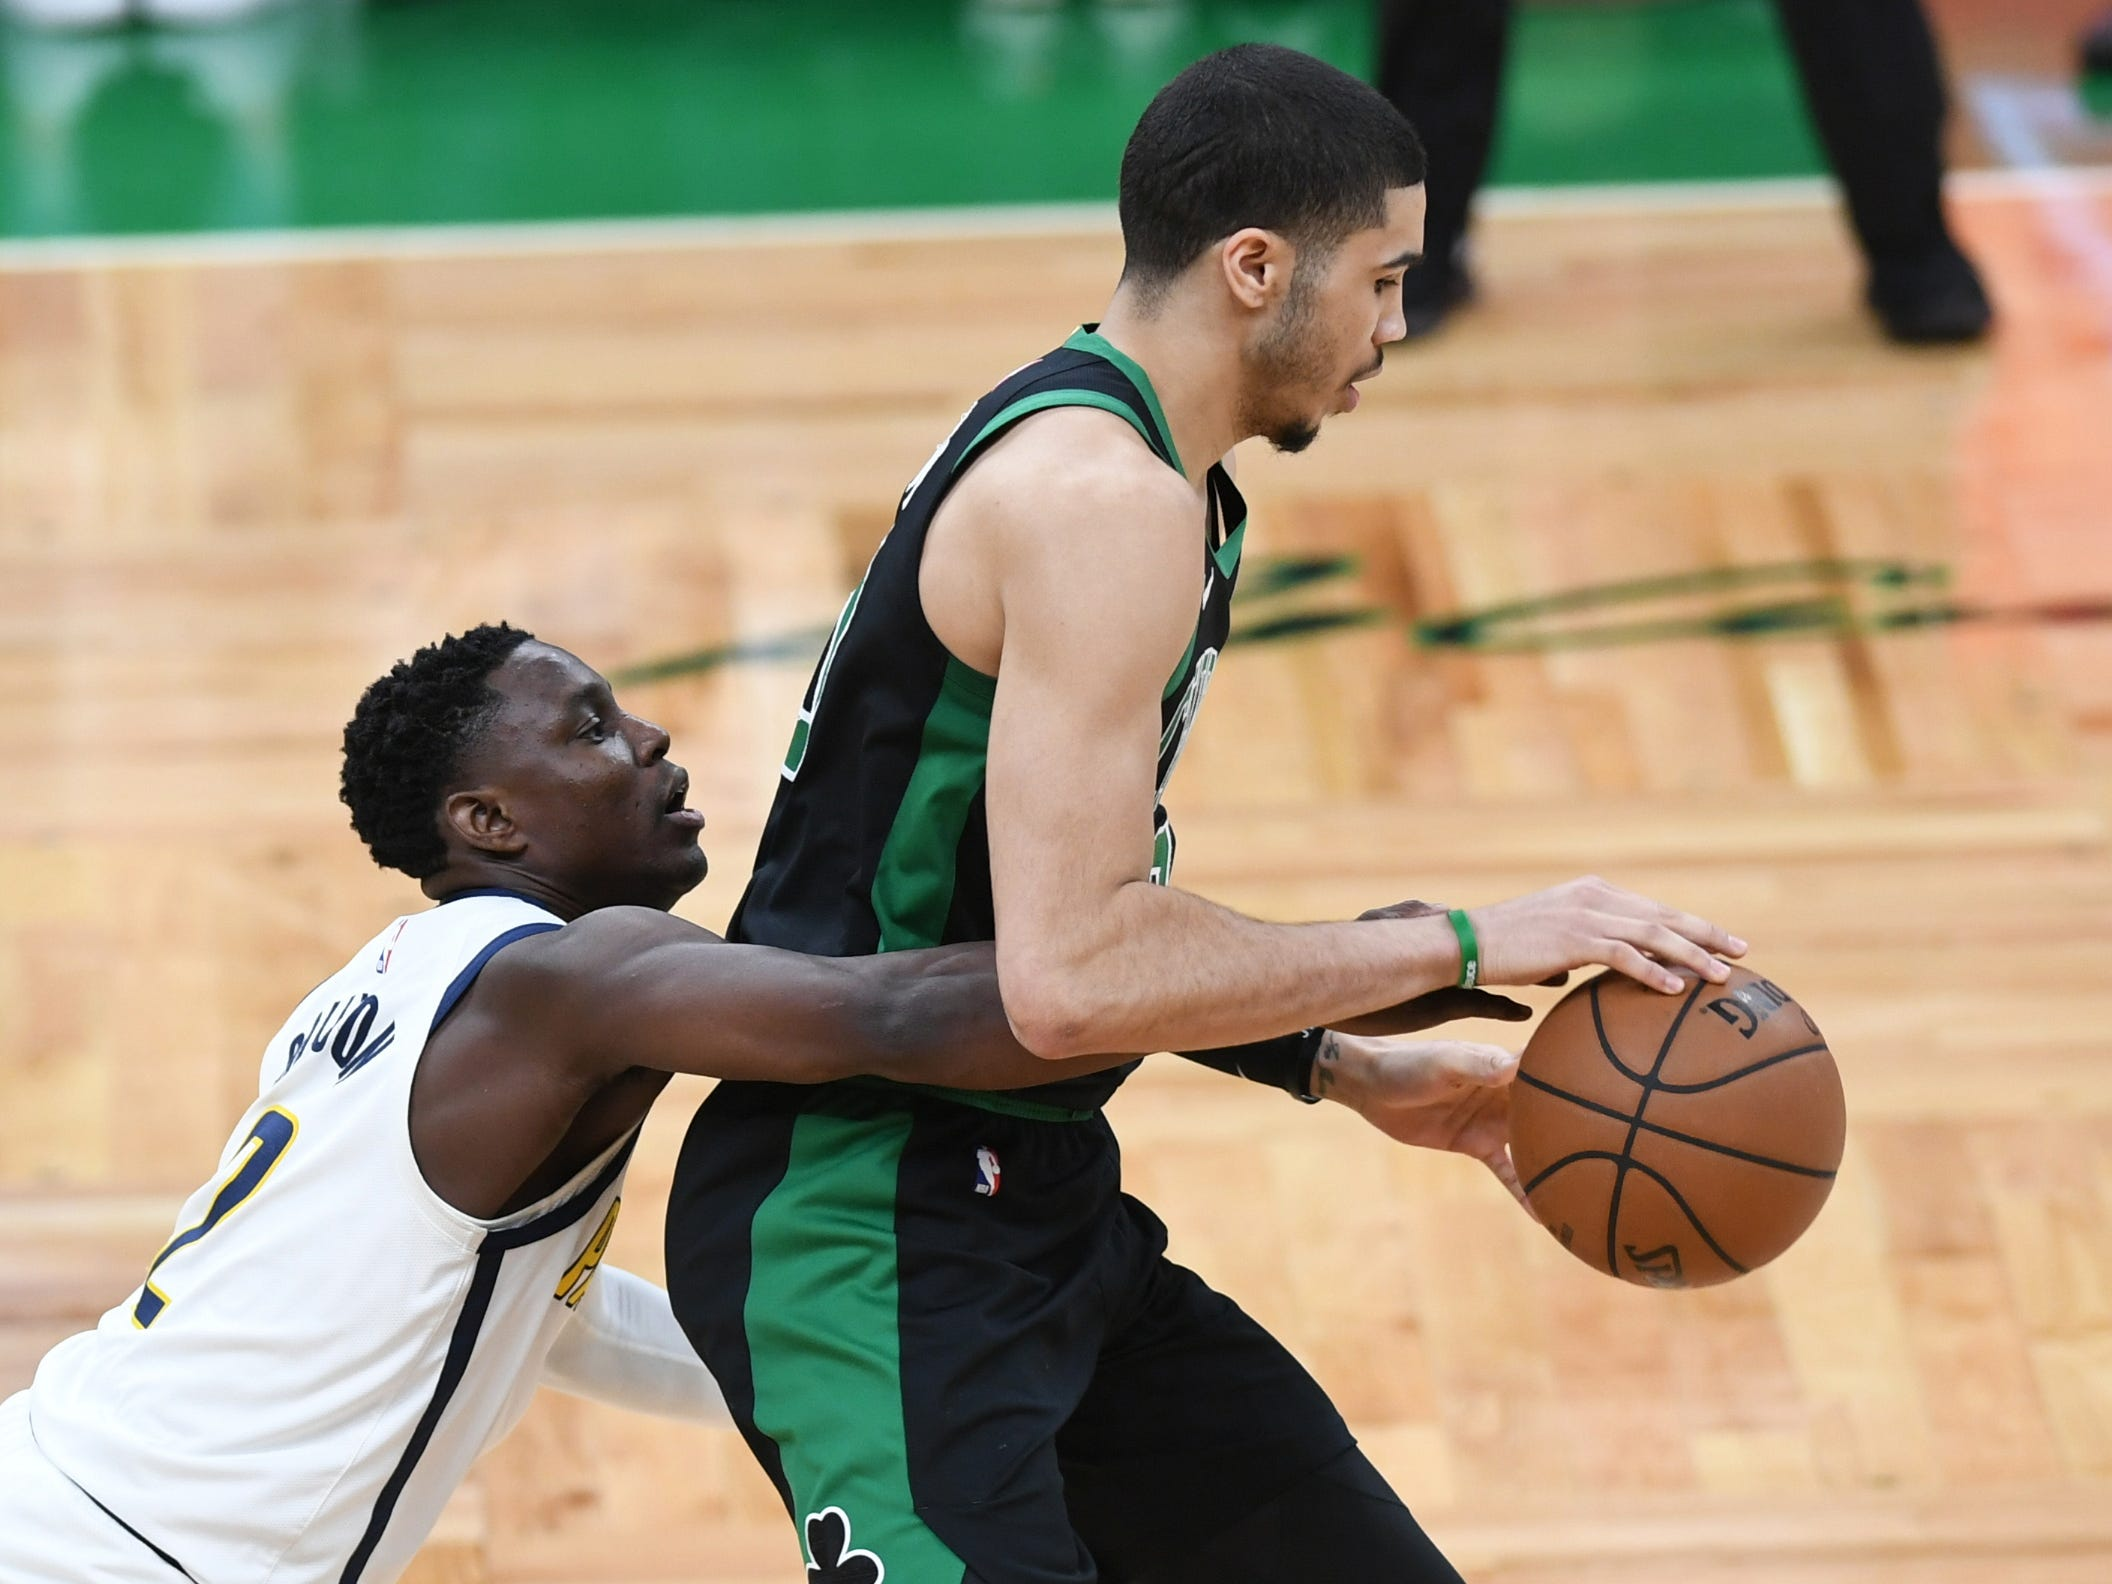 Apr 14, 2019; Boston, MA, USA; Indiana Pacers guard Darren Collison (2) tries to steal the ball from Boston Celtics forward Jayson Tatum (0) during the first half in game one of the first round of the 2019 NBA Playoffs at TD Garden.